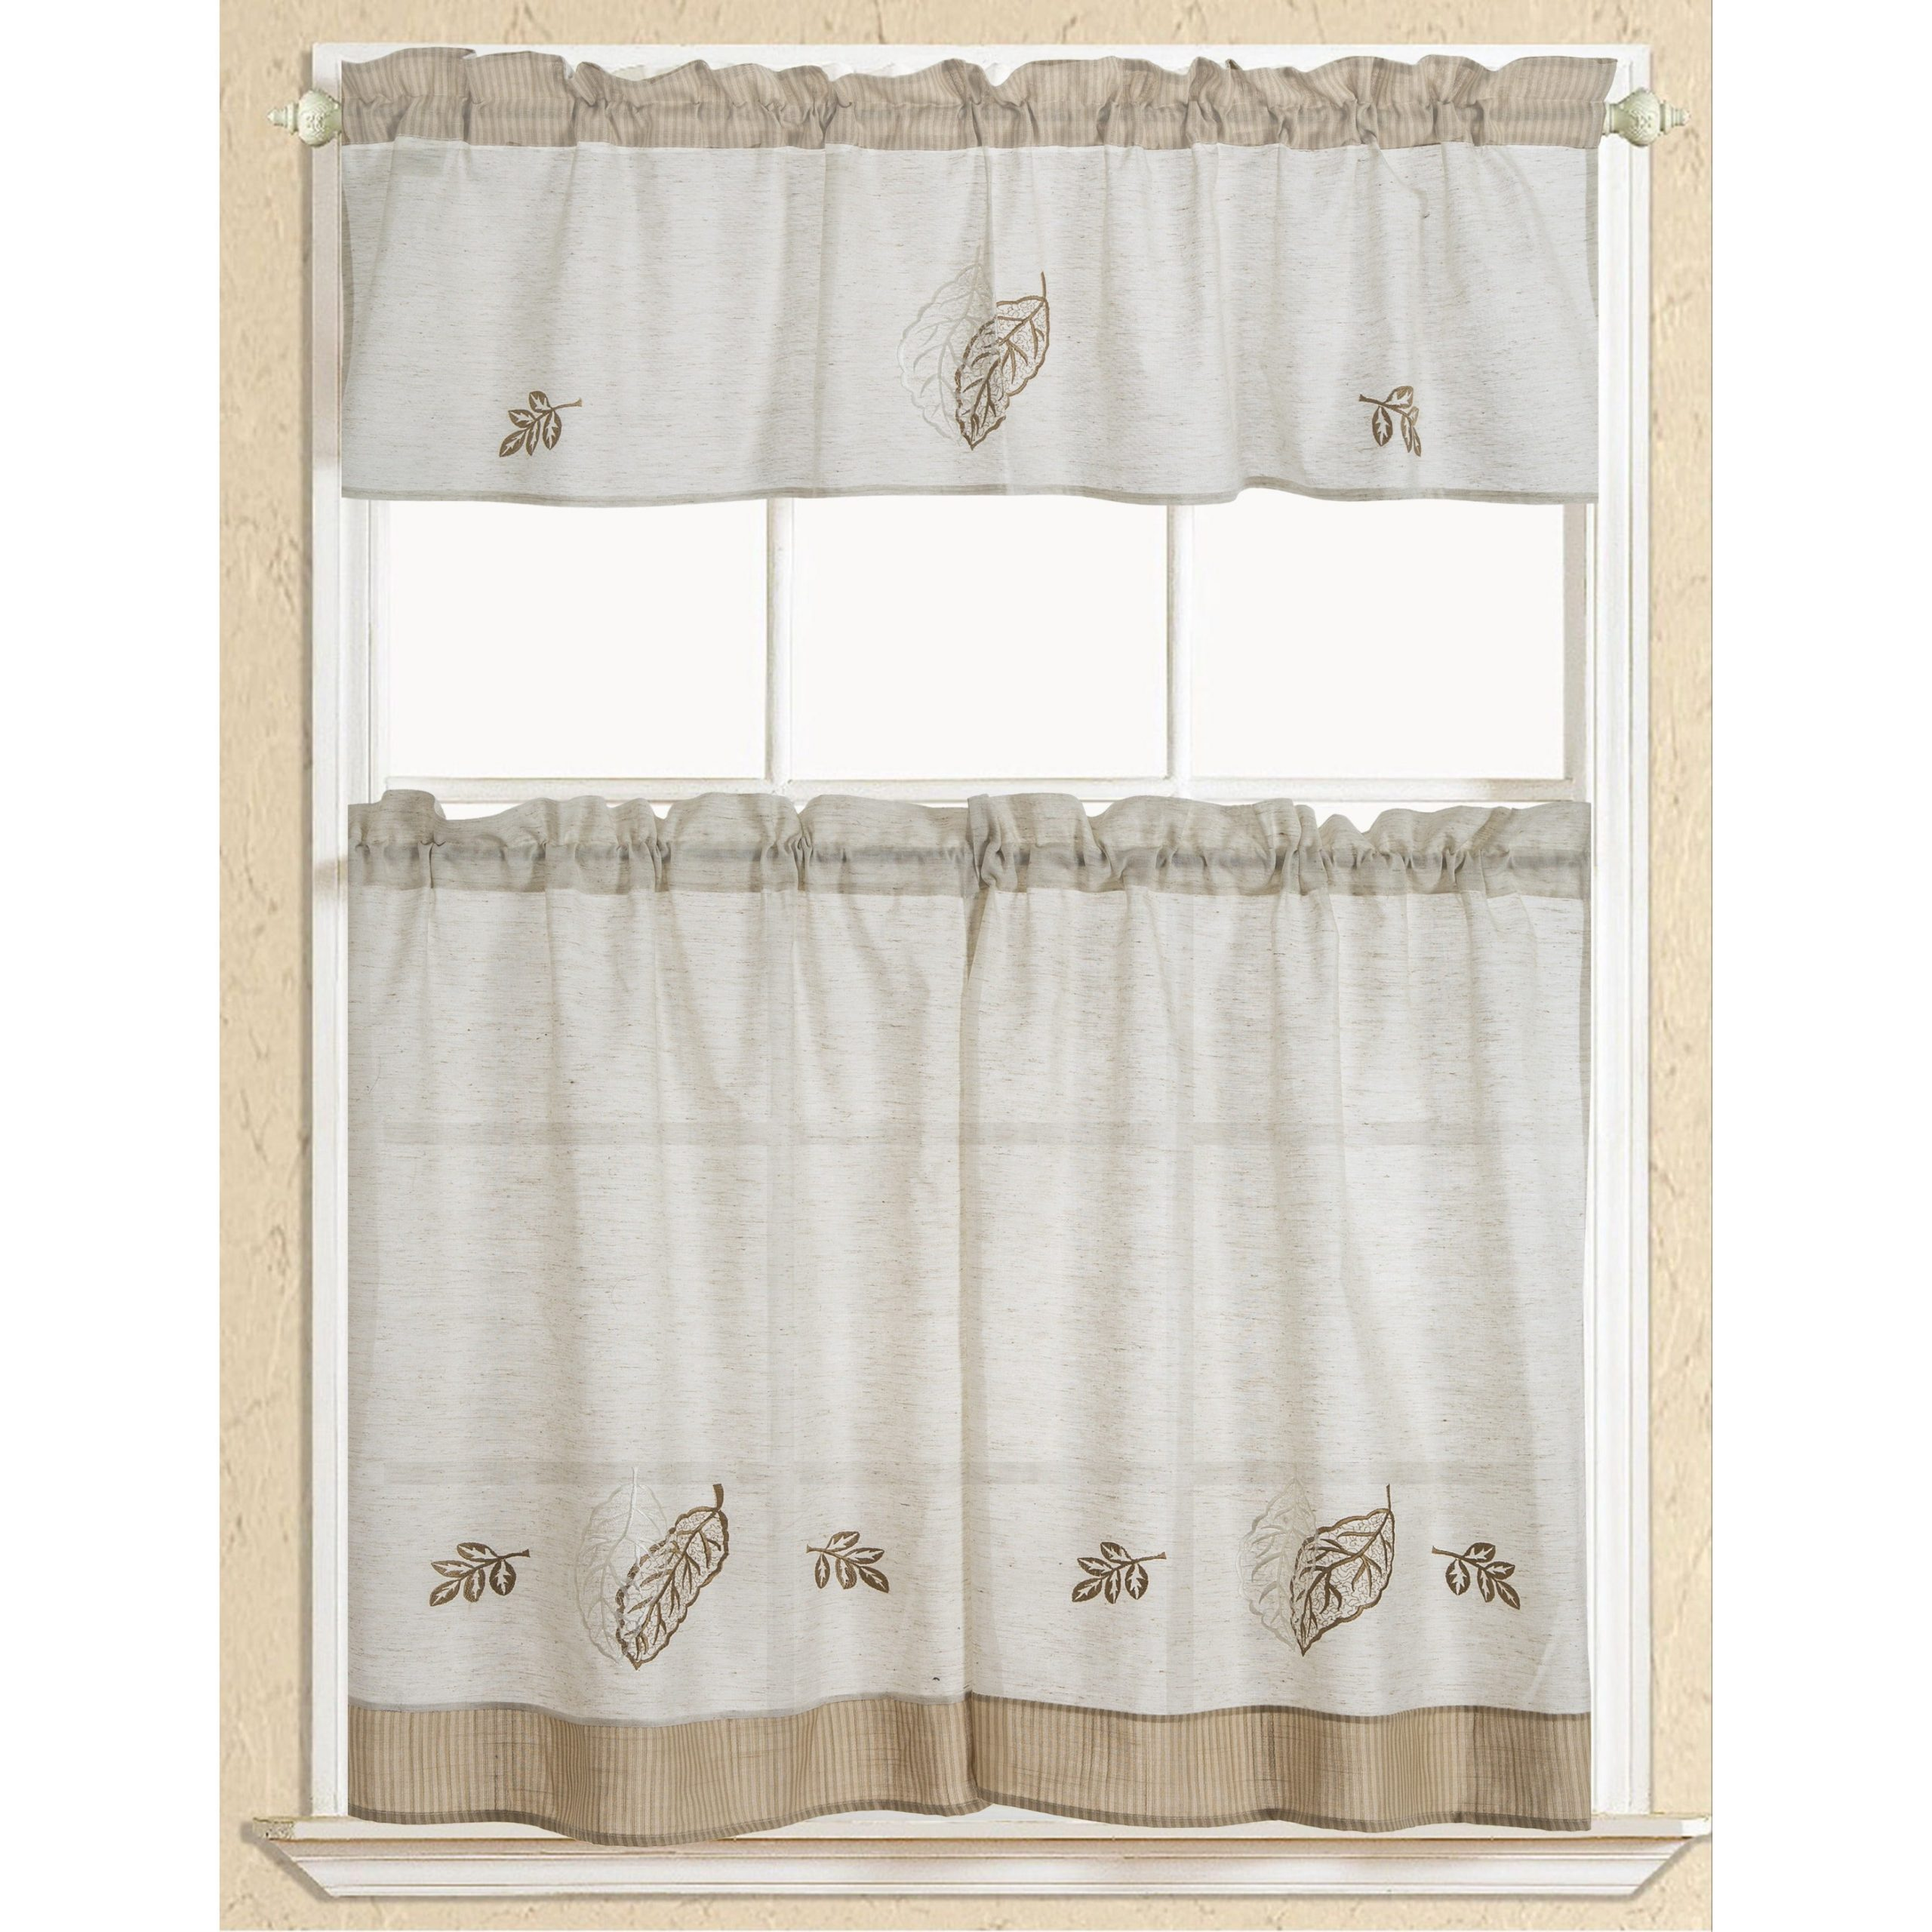 Rt Designers Collection Rustic Embroidered Leaf Tier And Valance Kitchen  Curtain Set Intended For Forest Valance And Tier Pair Curtains (Gallery 10 of 20)